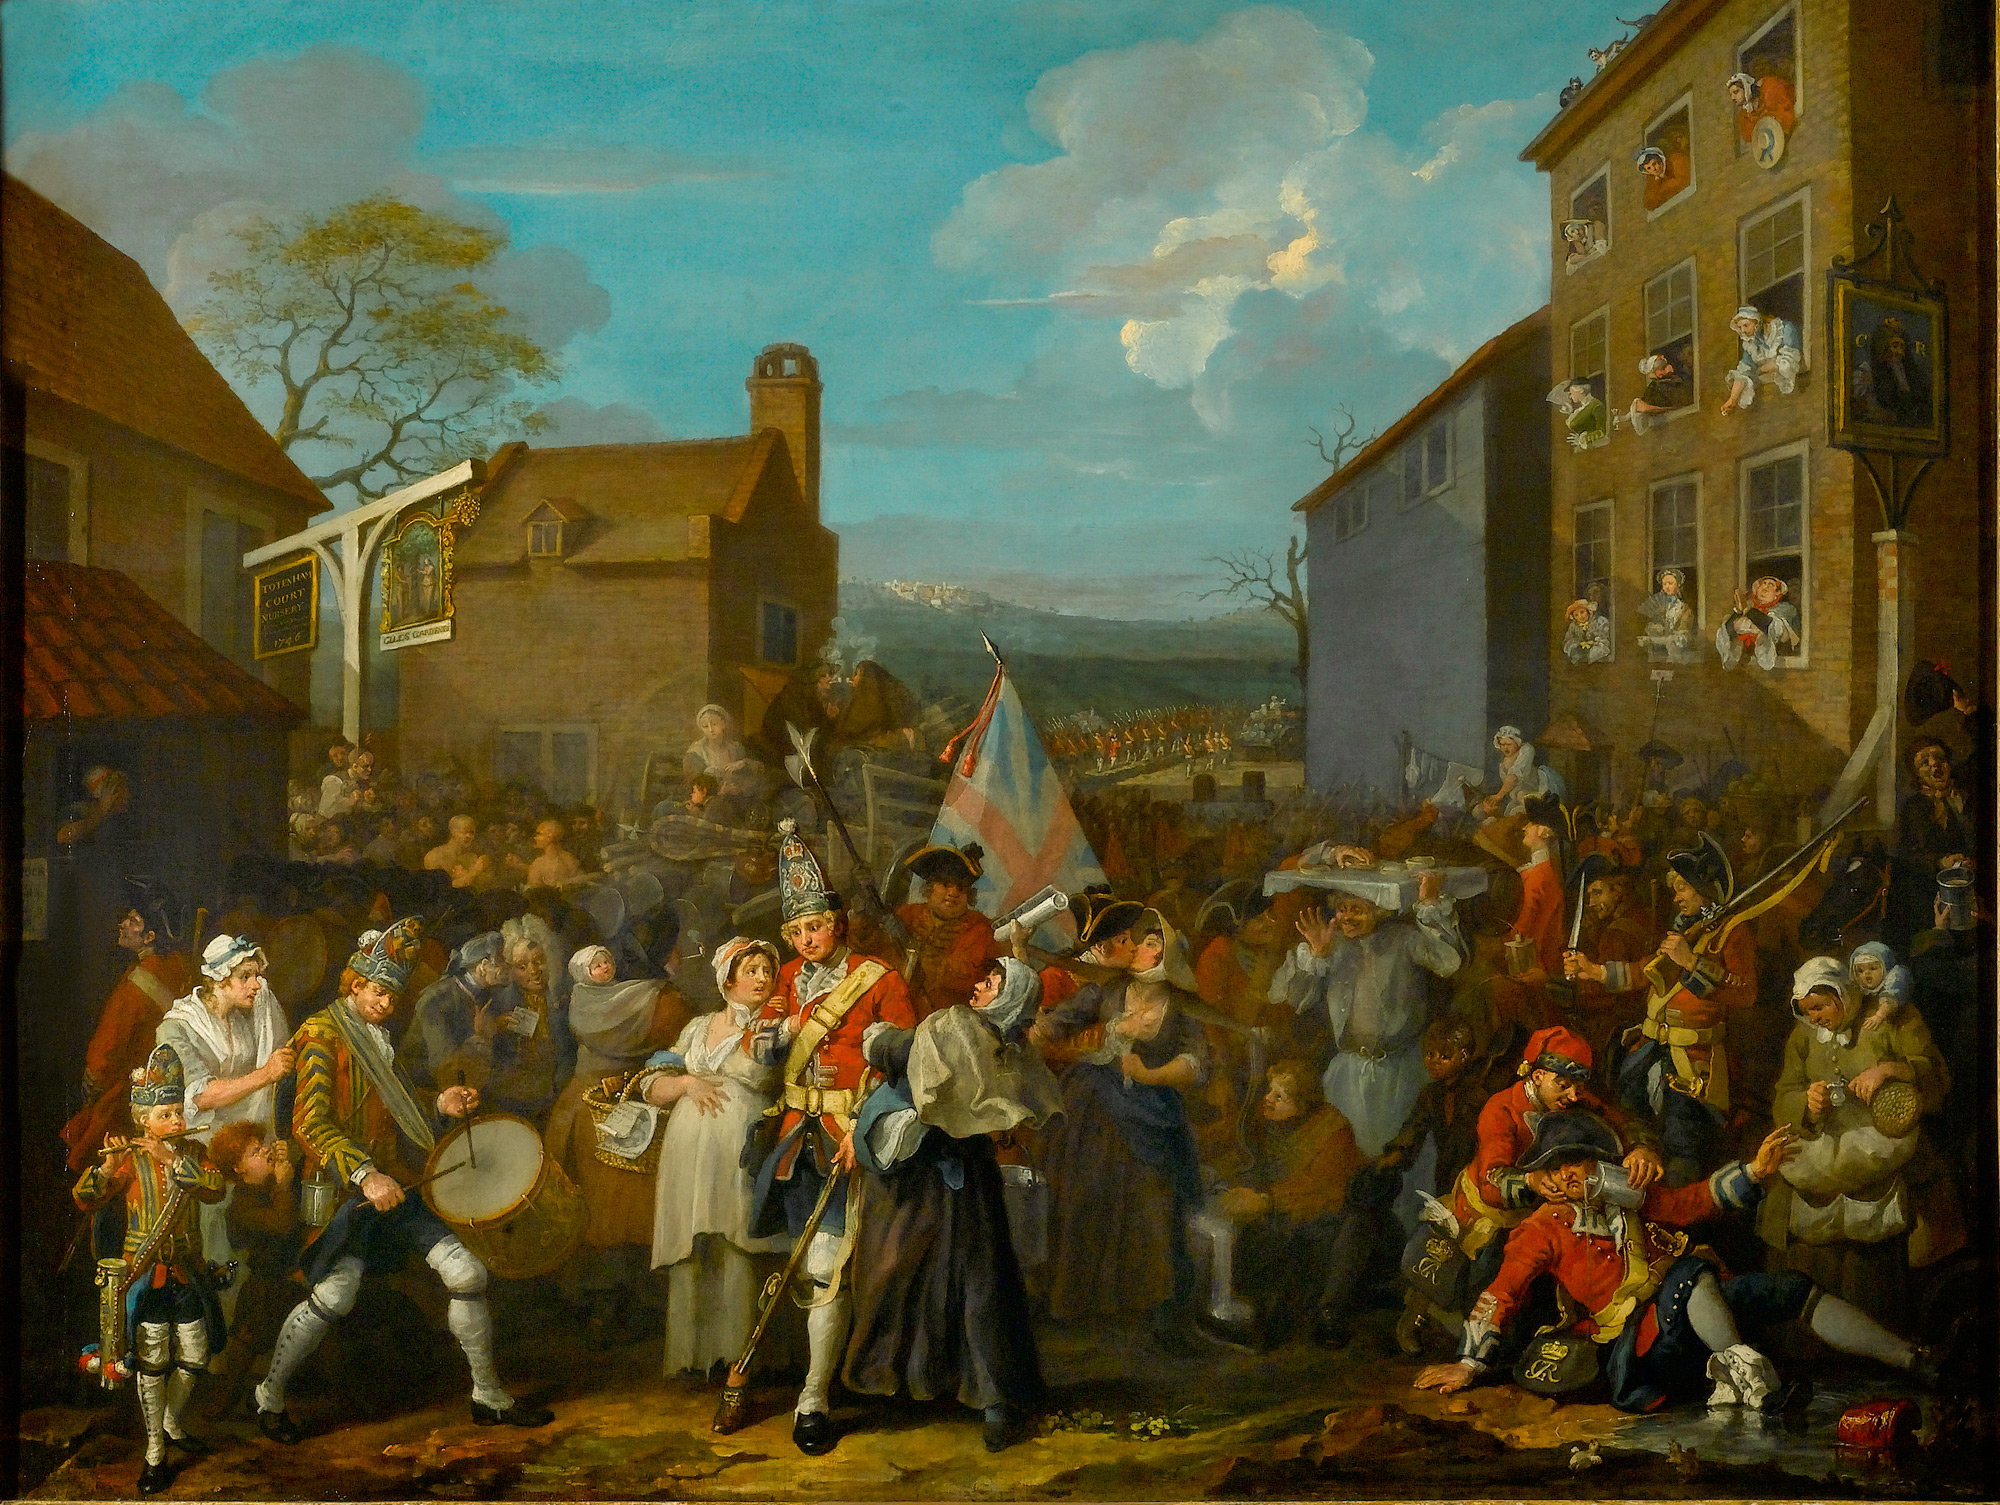 The March of the Guards to Finchley by William Hogarth, 1750